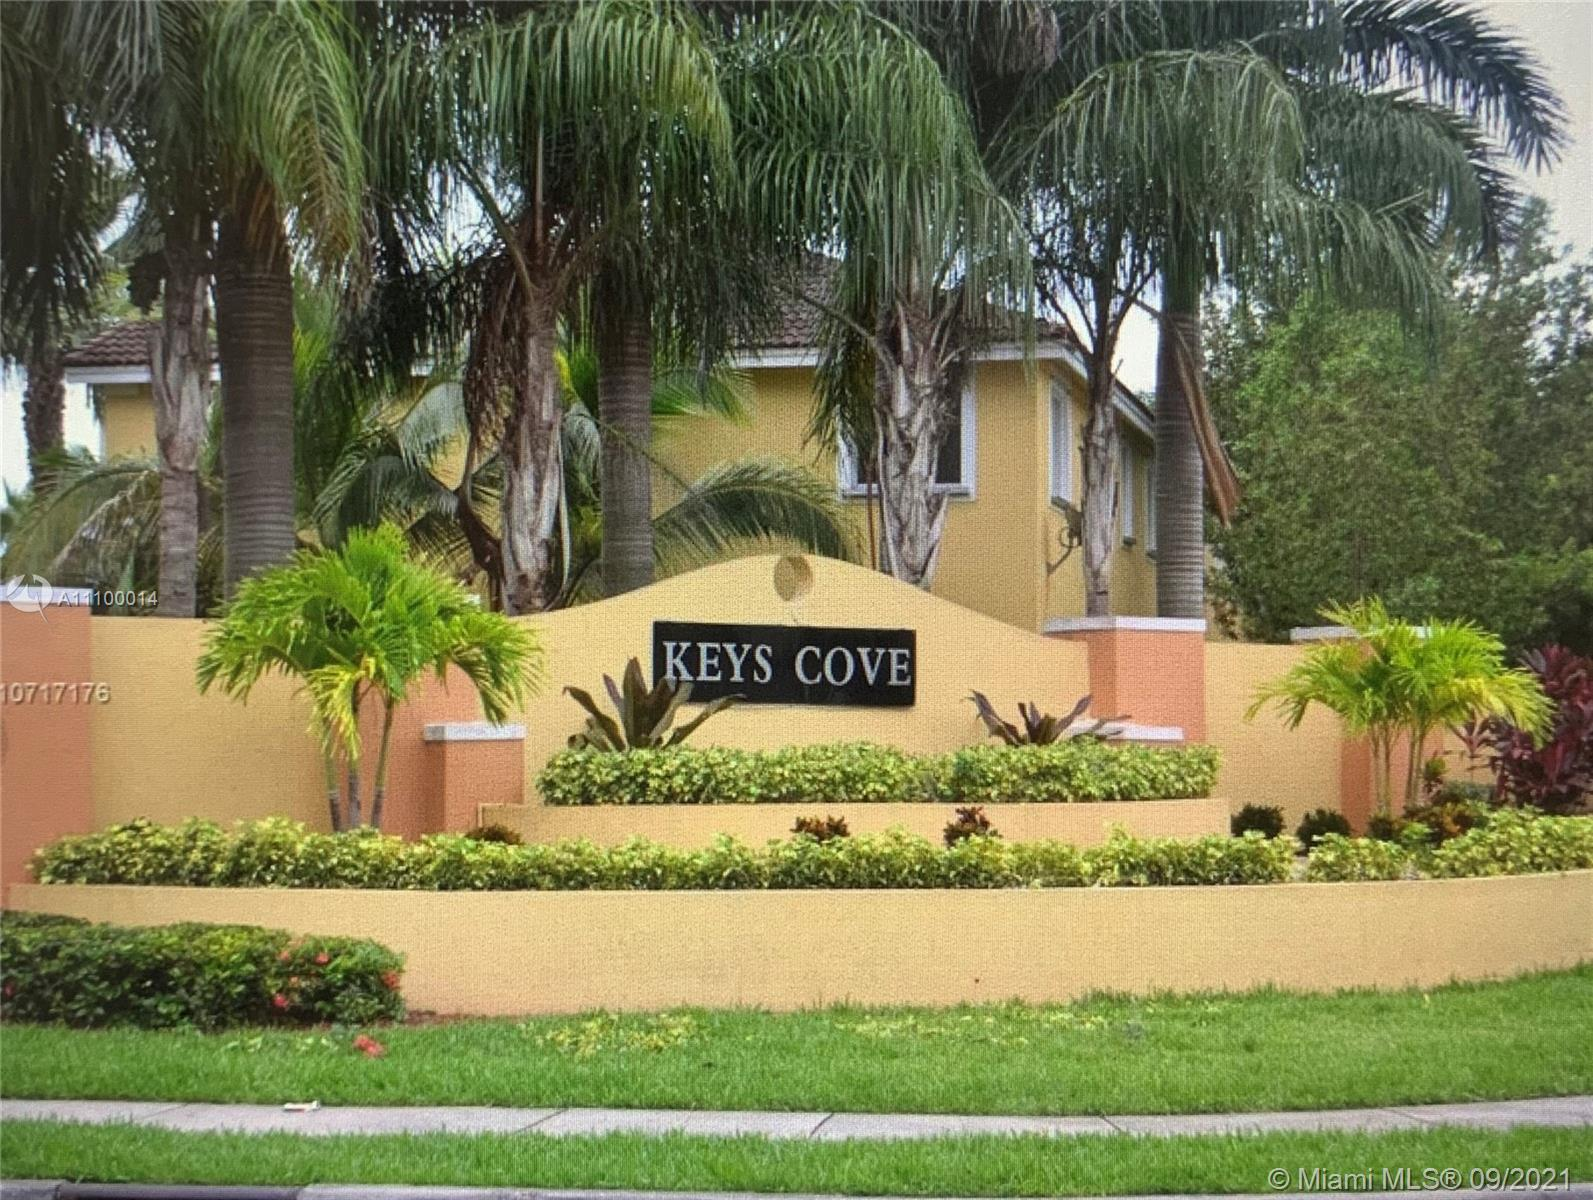 Comfortable, beautiful and bright 2/2 apartment in a Gated Community SHOMA AT KEYS COVE, ceramic floor and laminate floor for bedrooms. Community pool, lakes, BBQ area, 24 hours security. Freshly painted and ready to occupy. Near Baptist Hospital South, Homestead-Miami Speedway, Miami Schools, restaurants, close to shopping center, bus transportation and Florida Turnpike Hwy. Easy to show. Lock box.